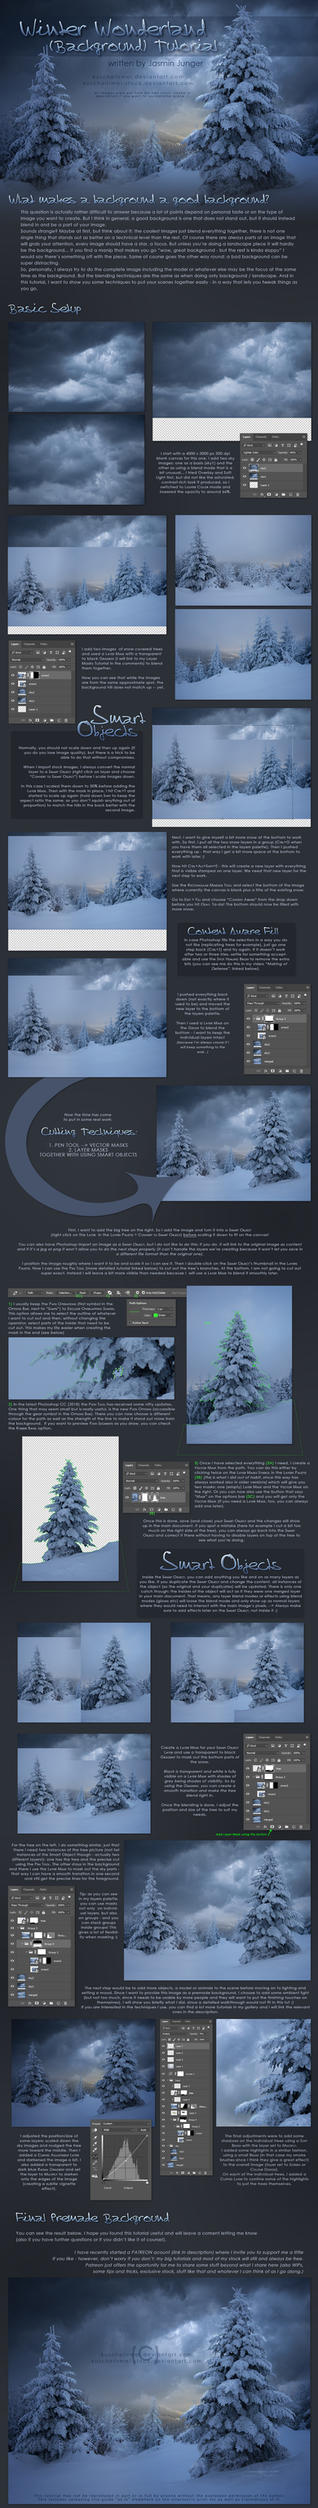 Winter Wonderland (Background) Tutorial by kuschelirmel-stock